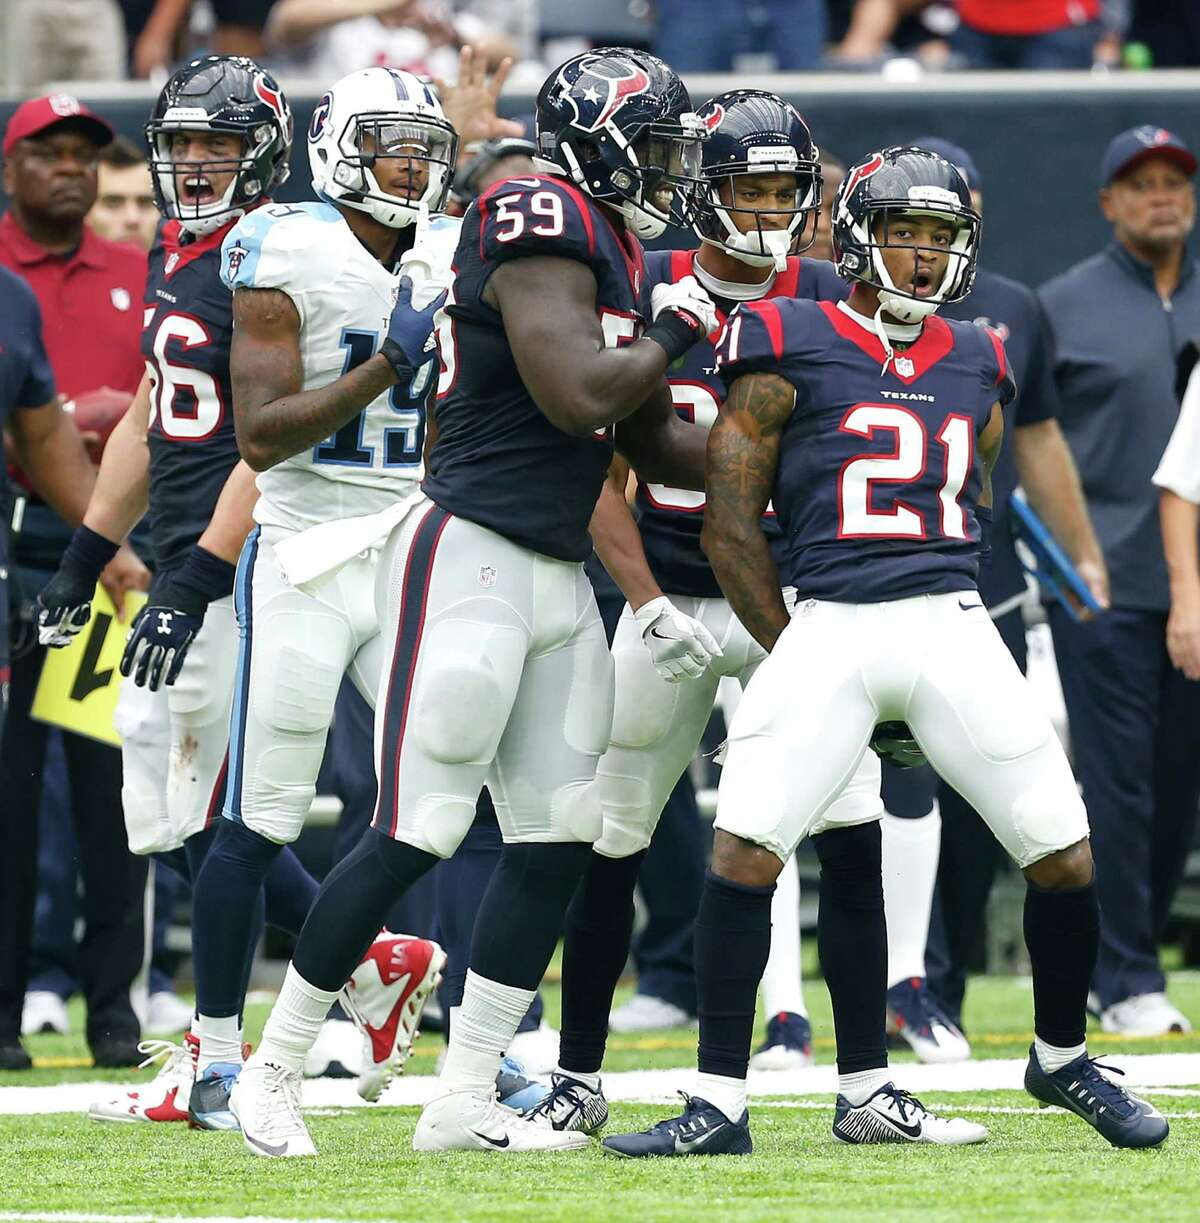 Houston Texans cornerback A.J. Bouye (21) and outside linebacker Whitney Mercilus (59) react after stopping the Tennessee Titans short of a first down during the fourth quarter of an NFL football game at NRG Stadium on Sunday, Oct. 2, 2016, in Houston.